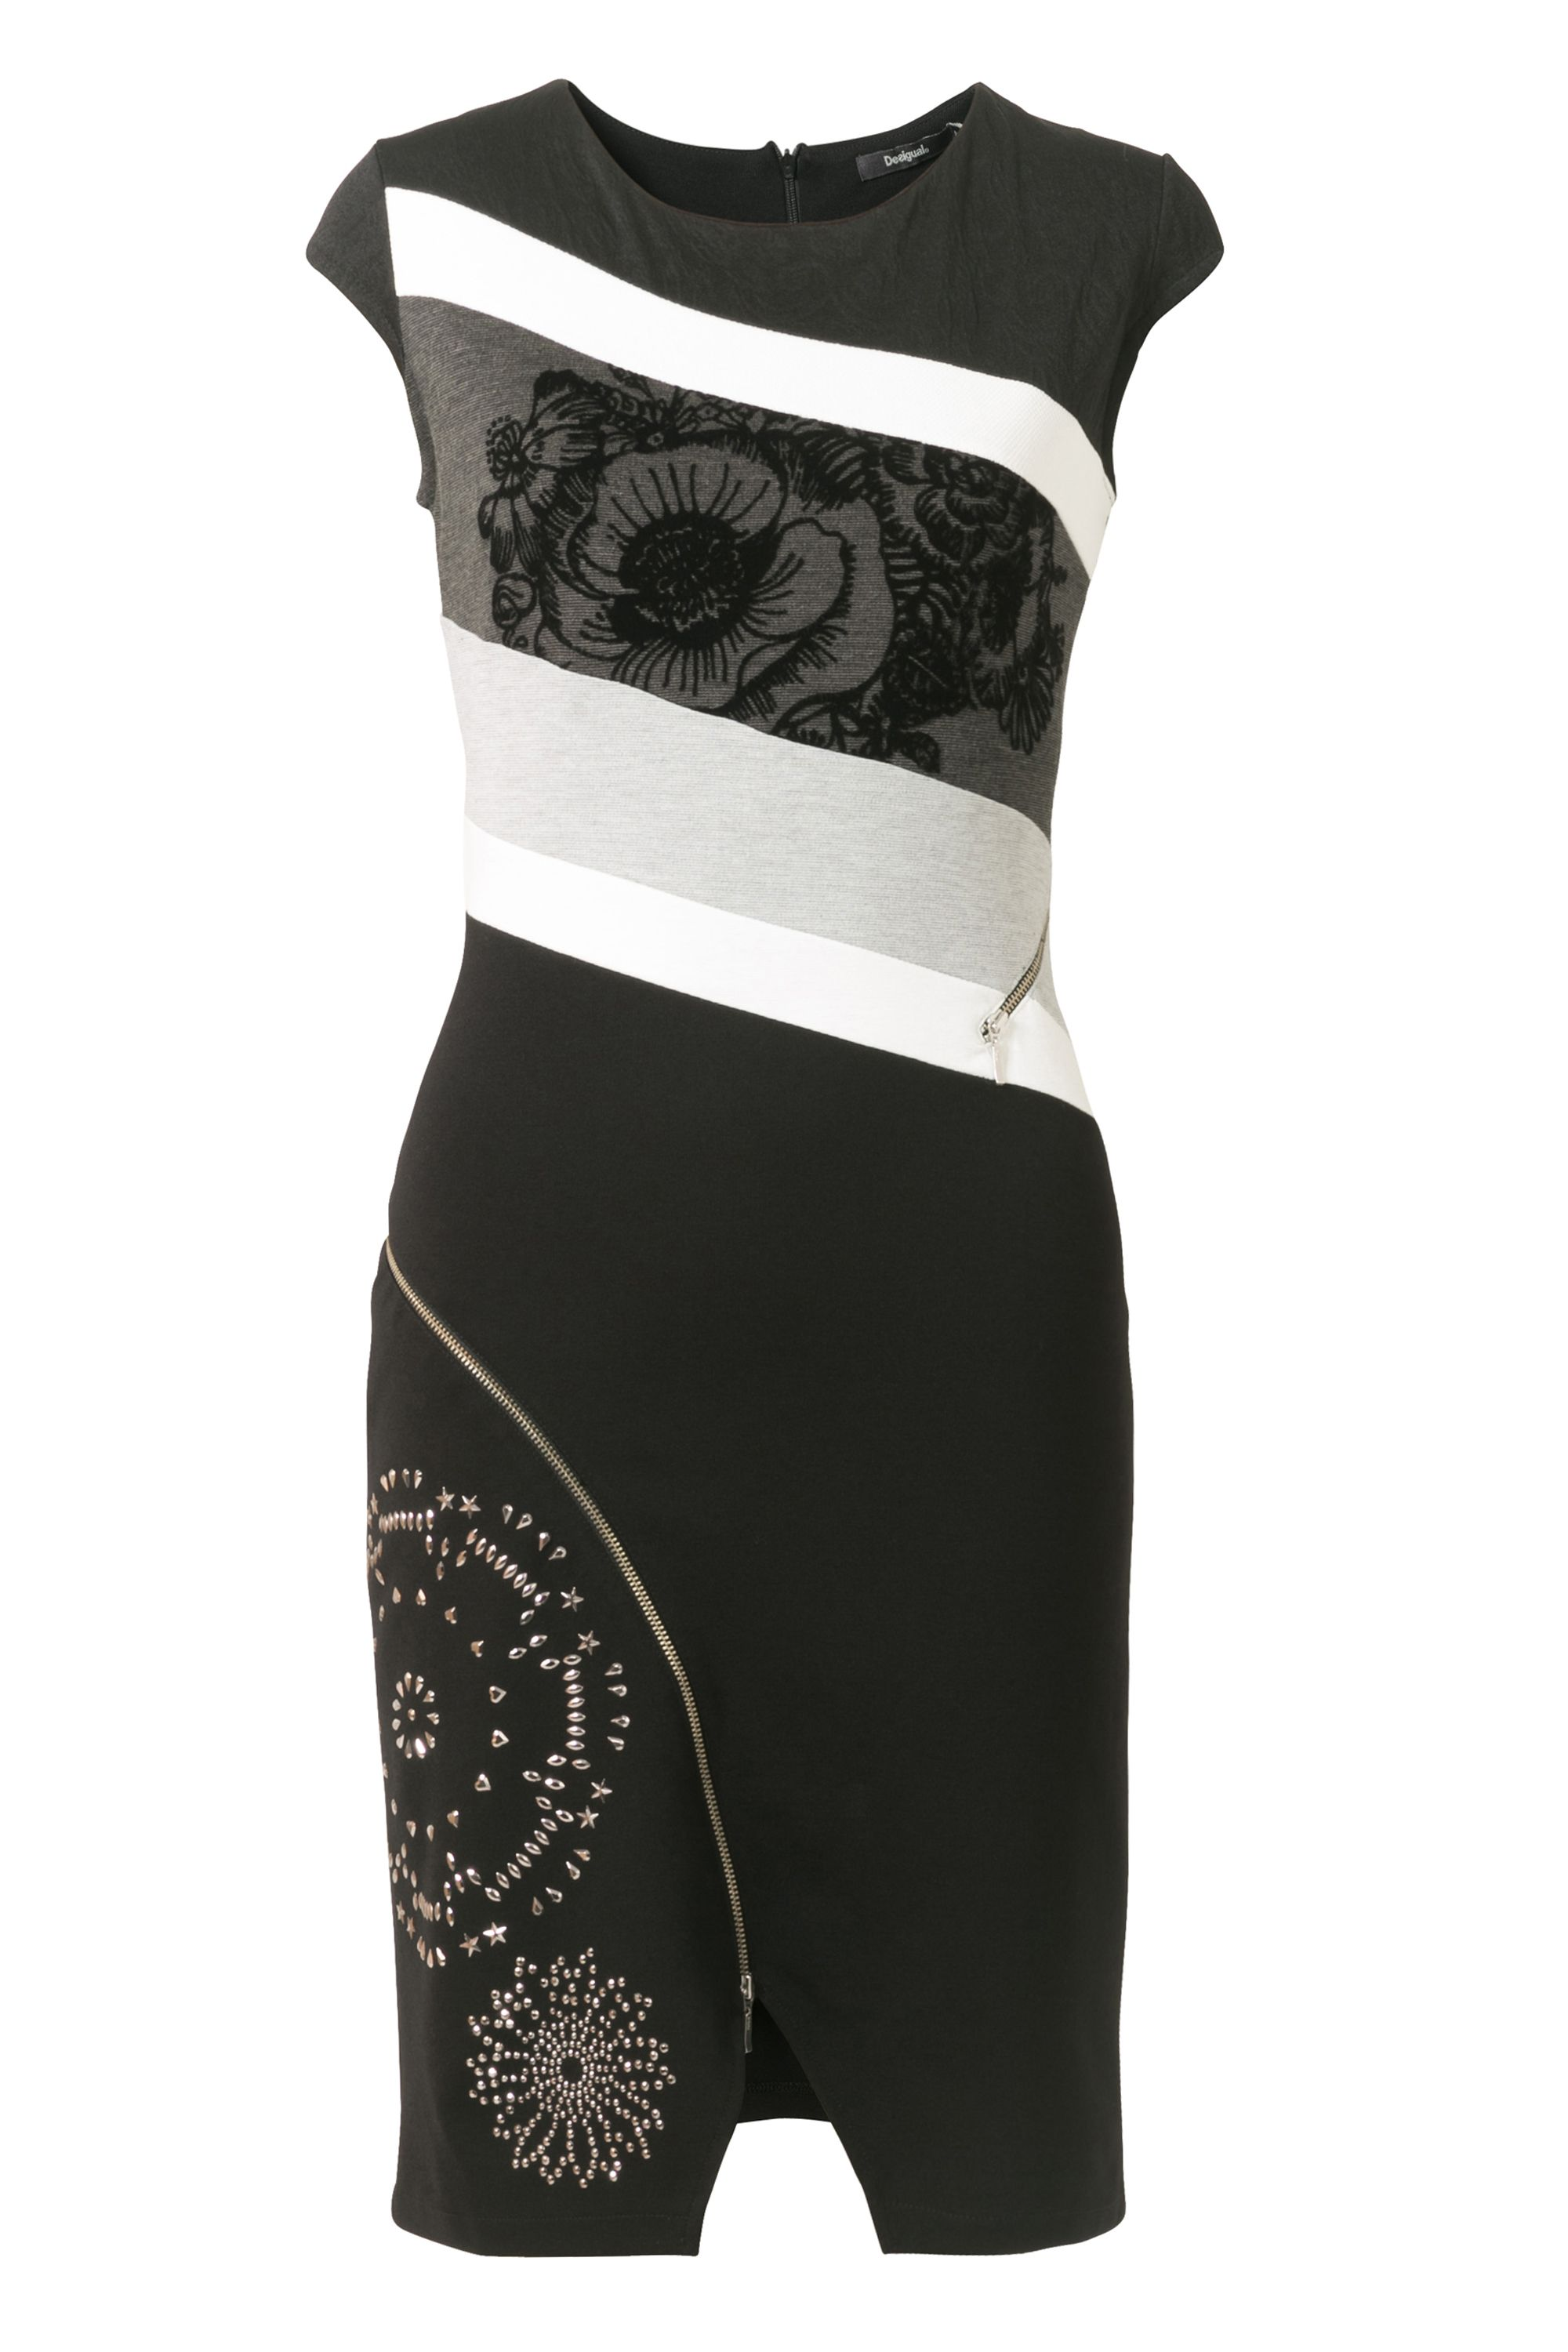 Desigual Dress Candice, Black